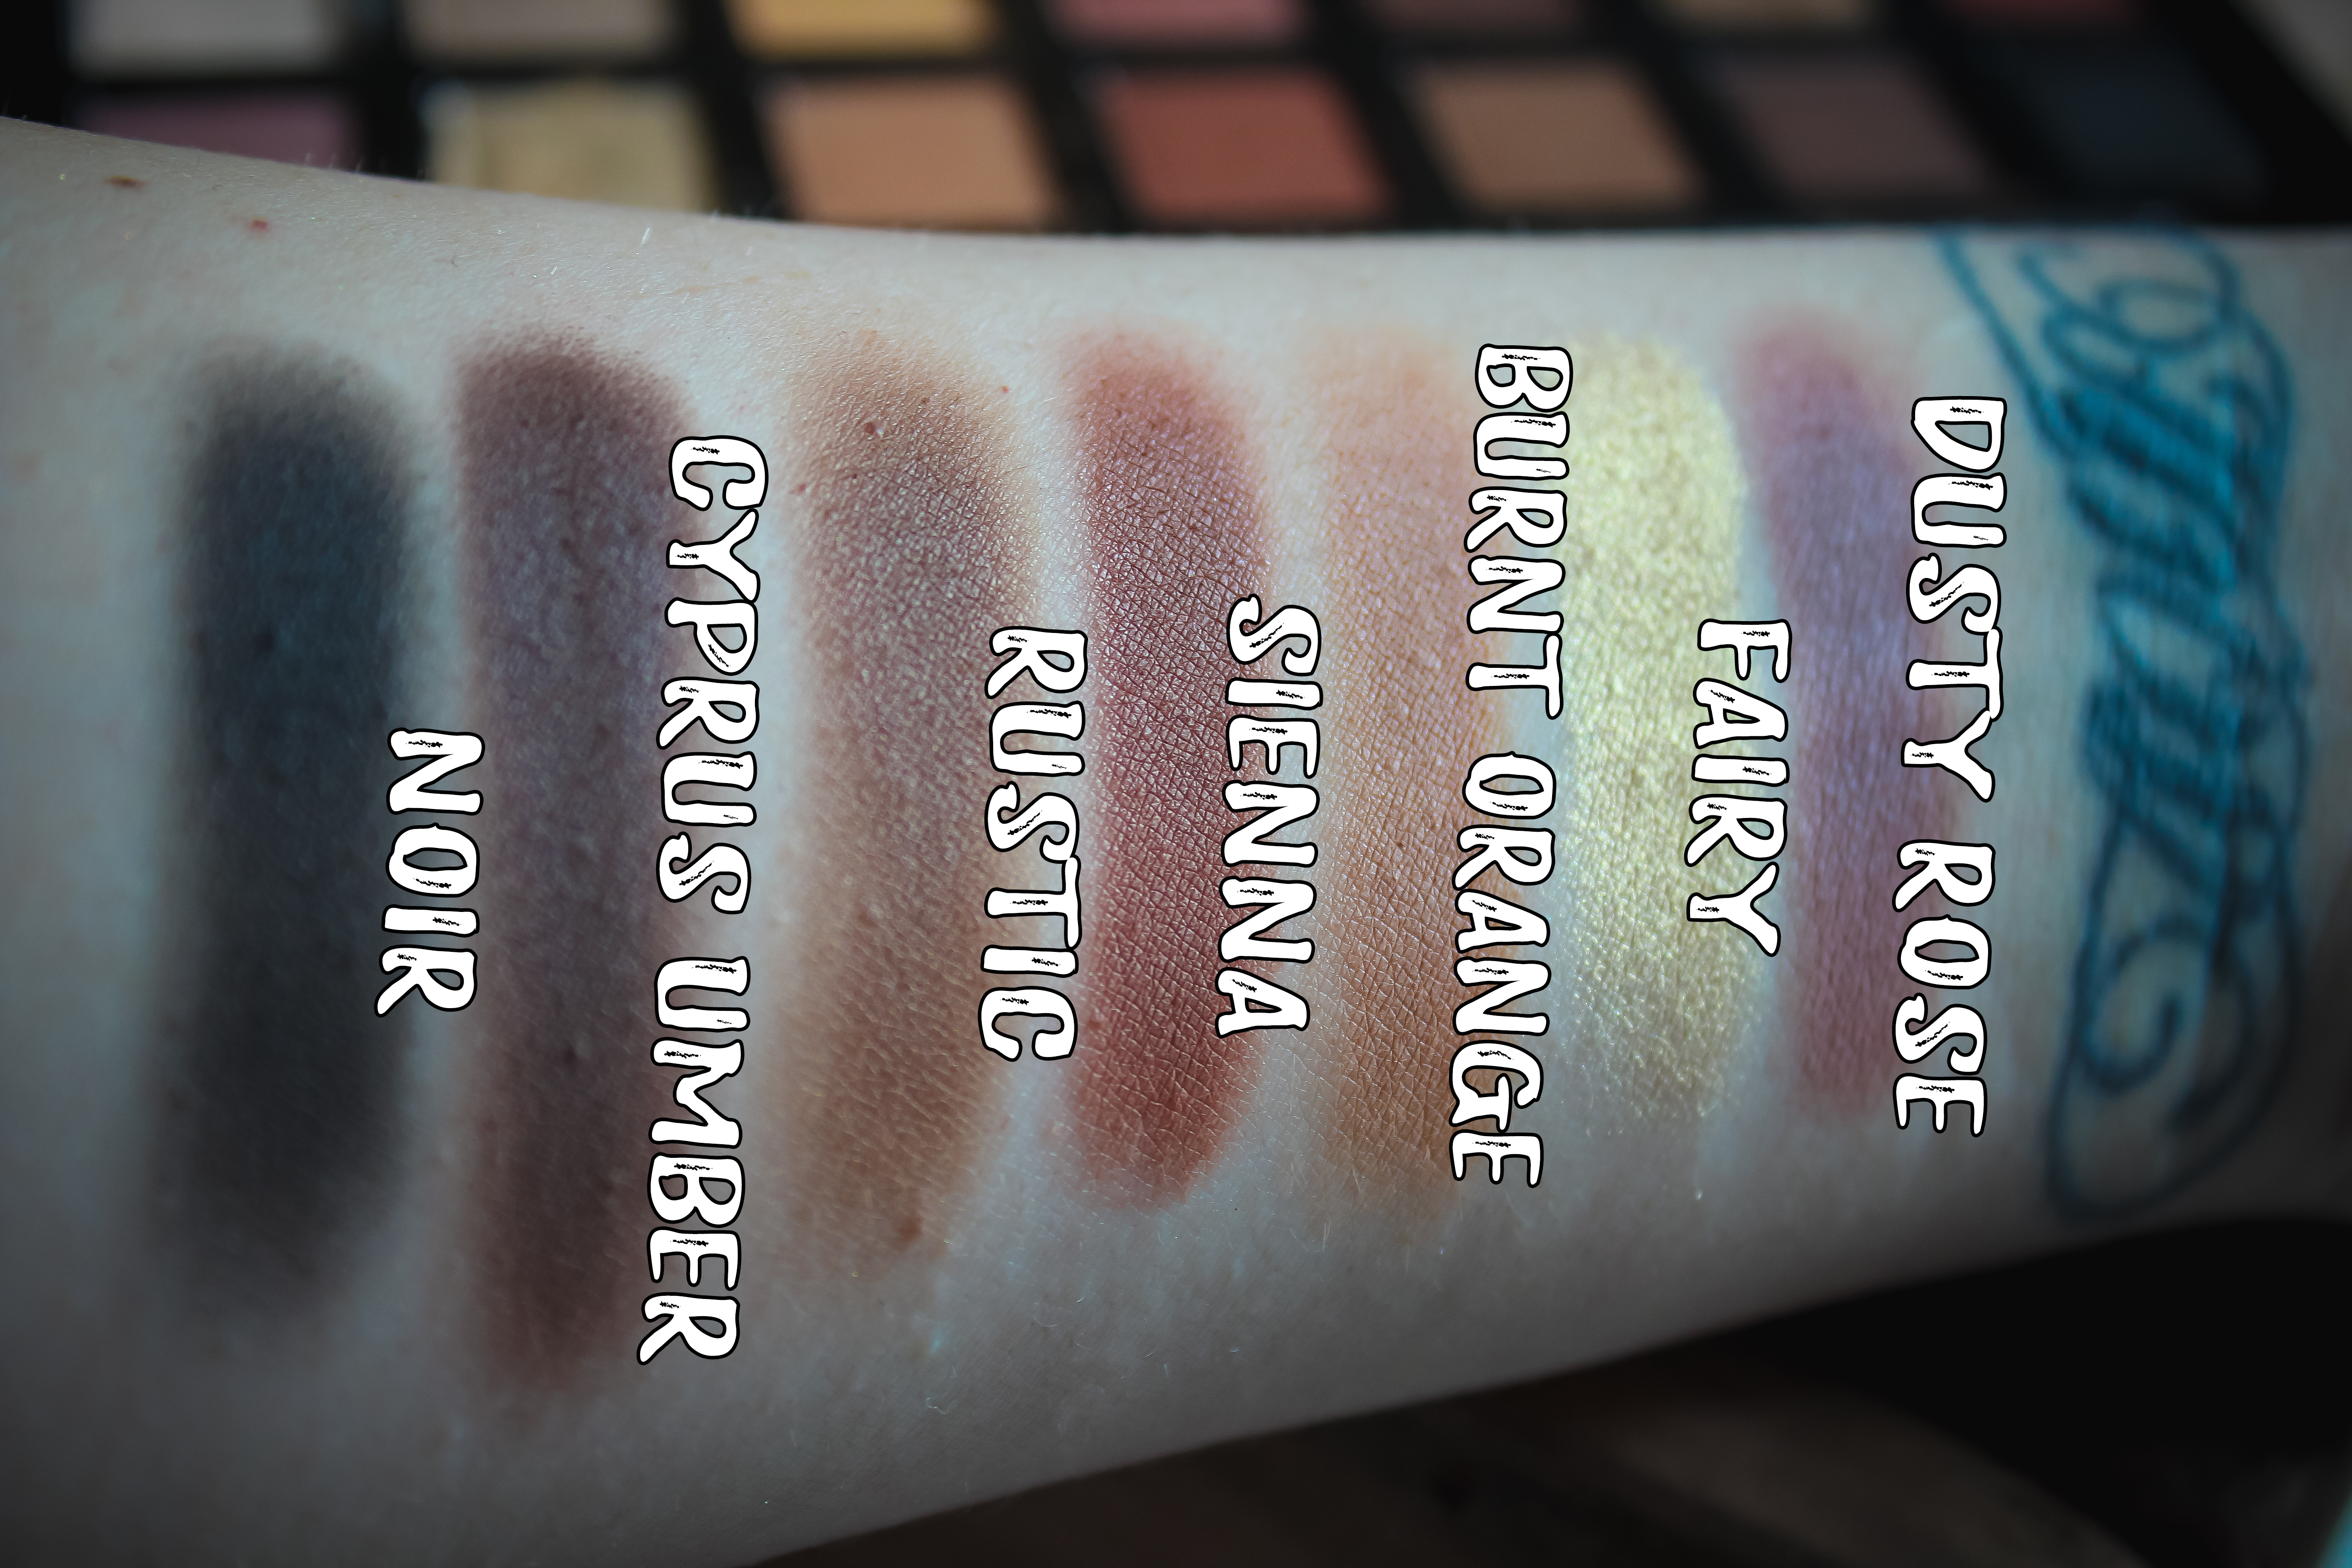 ABH Soft Glam Swatches 2